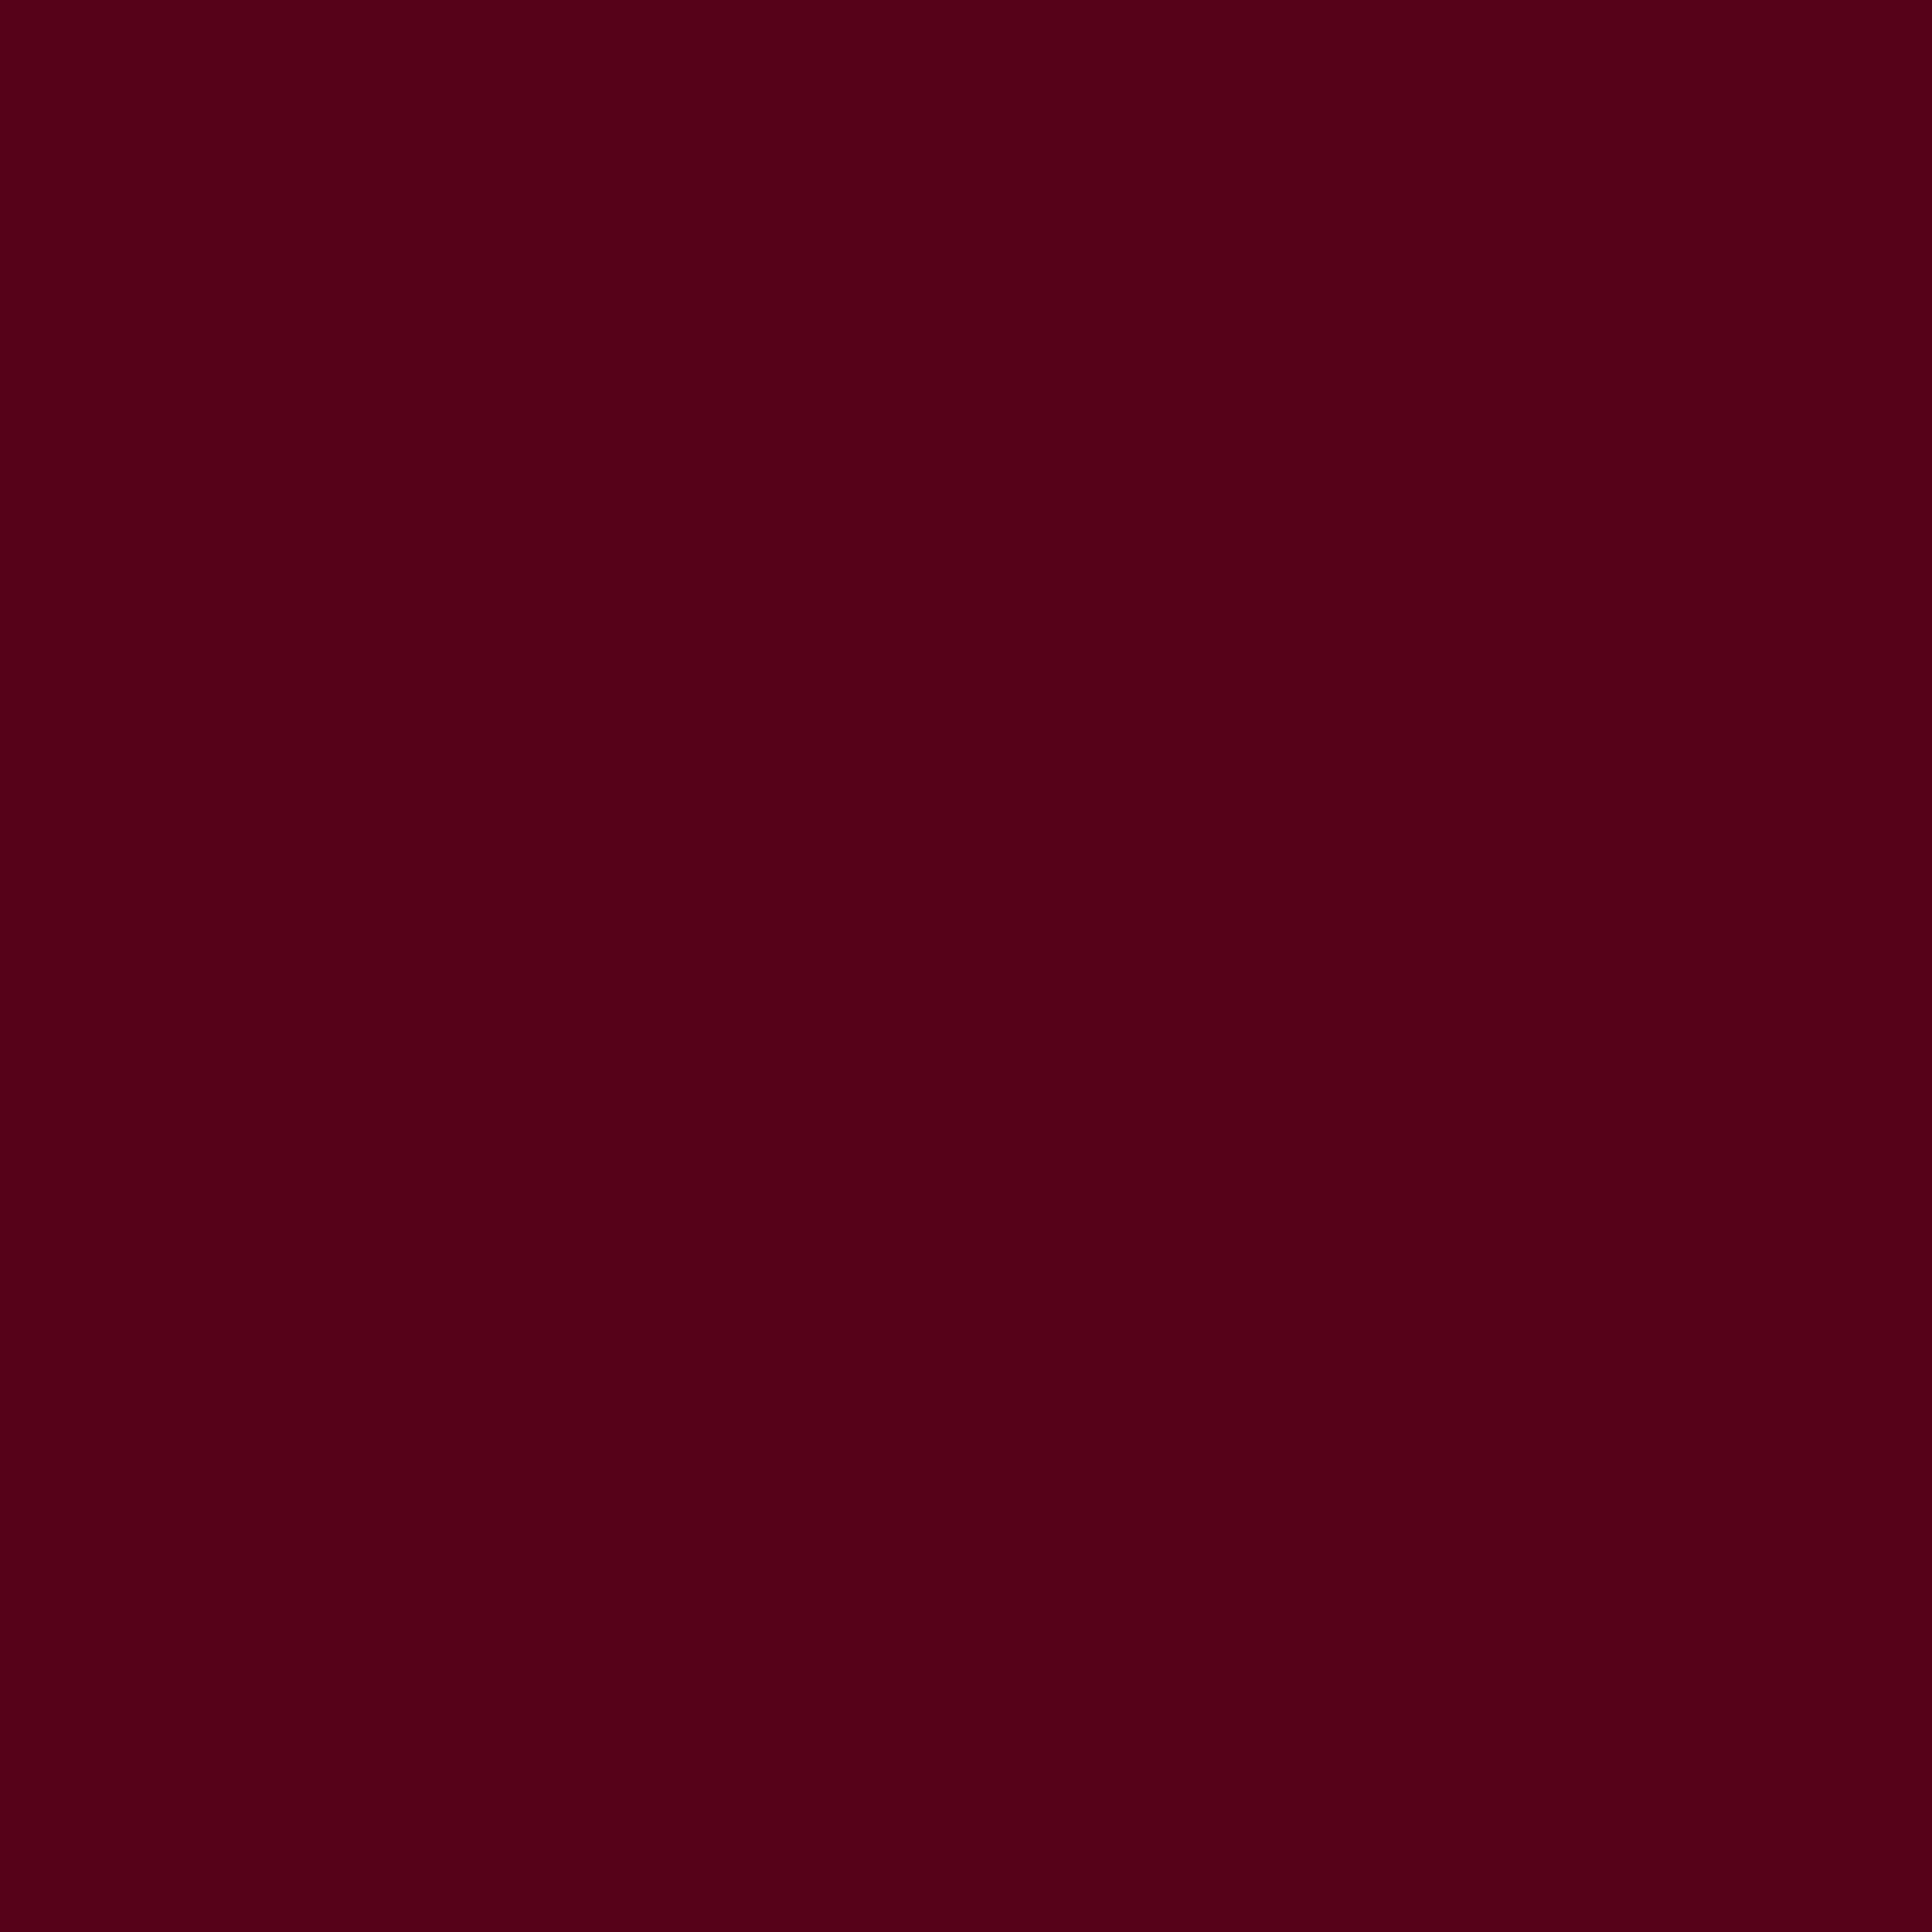 2732x2732 Dark Scarlet Solid Color Background